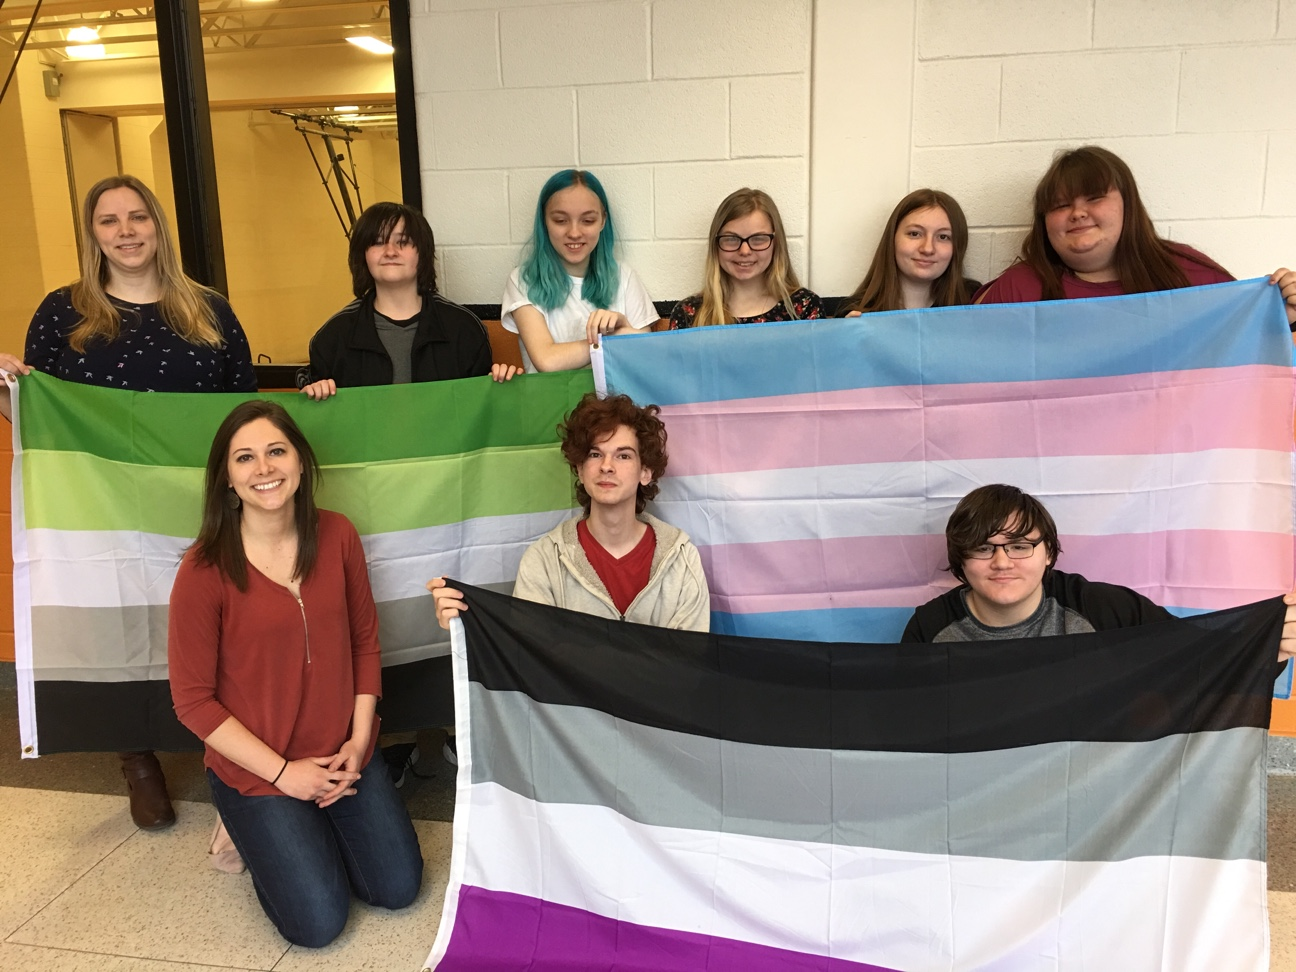 Some of the members of the TAMS-HS LBGT+ Support Group. Front left to right: Ms. Mazurak, Lance Hockenberry, Thad Woomer Back left to right : Guidance Department intern Ms. Katrina Grigoryan, Landon Gill, Eddie Fessler-Laporte, Megan Rhodes, Meredith Carper, Shay Shawley.